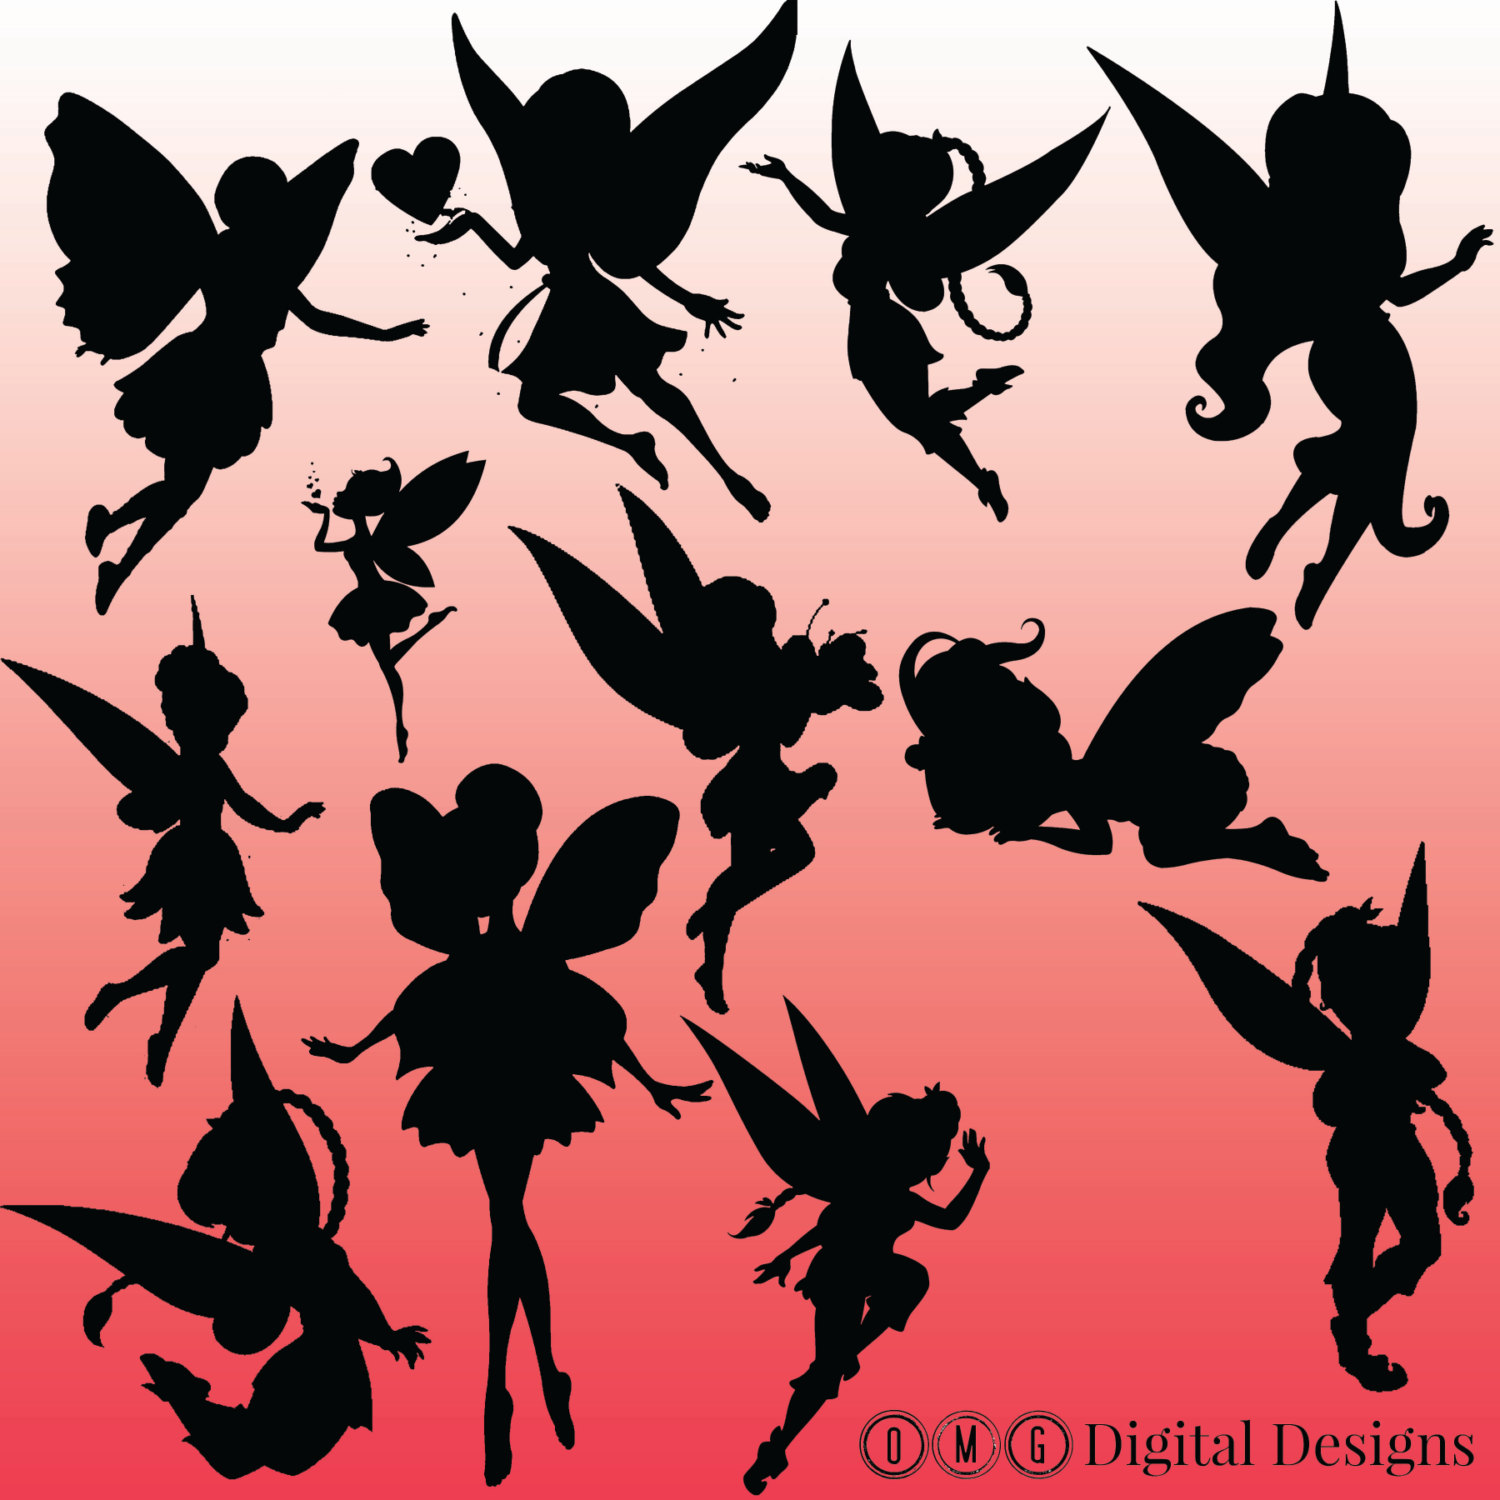 12 Fairy Silhouette Clipart Images, Clipart Design Elements.